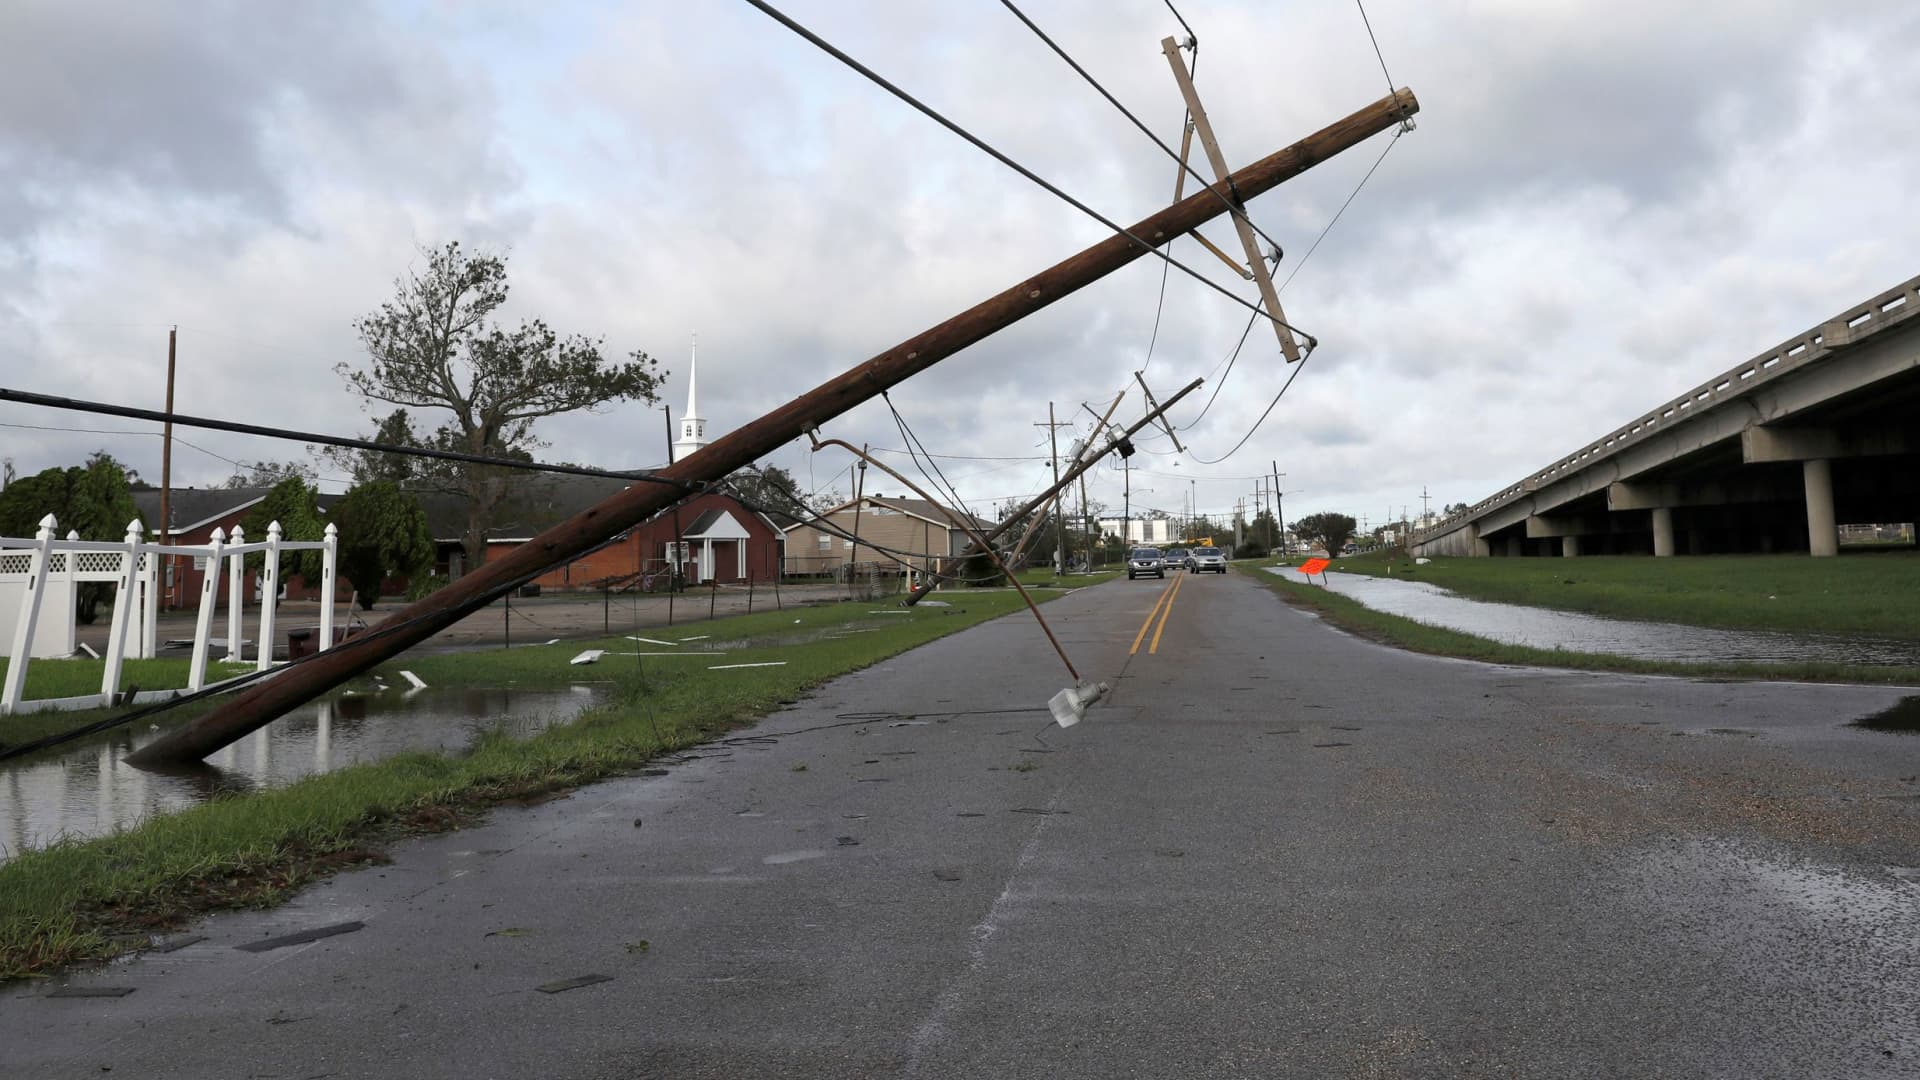 A damaged electric line is pictured after Hurricane Ida made landfall in Louisiana, in Kenner, Louisiana, August 30, 2021.